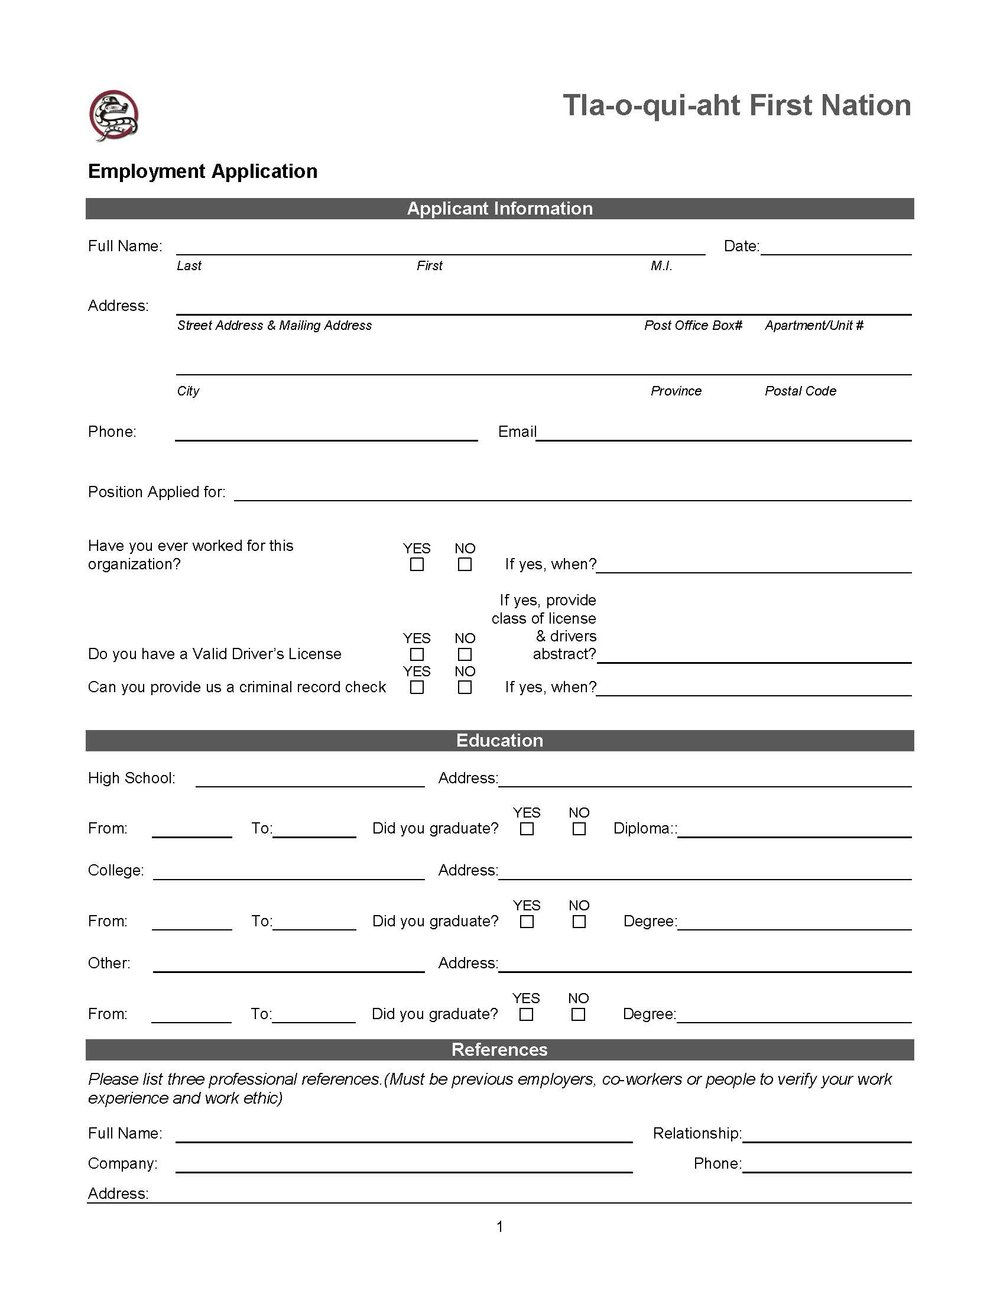 TFN General Application_Page_1.jpg